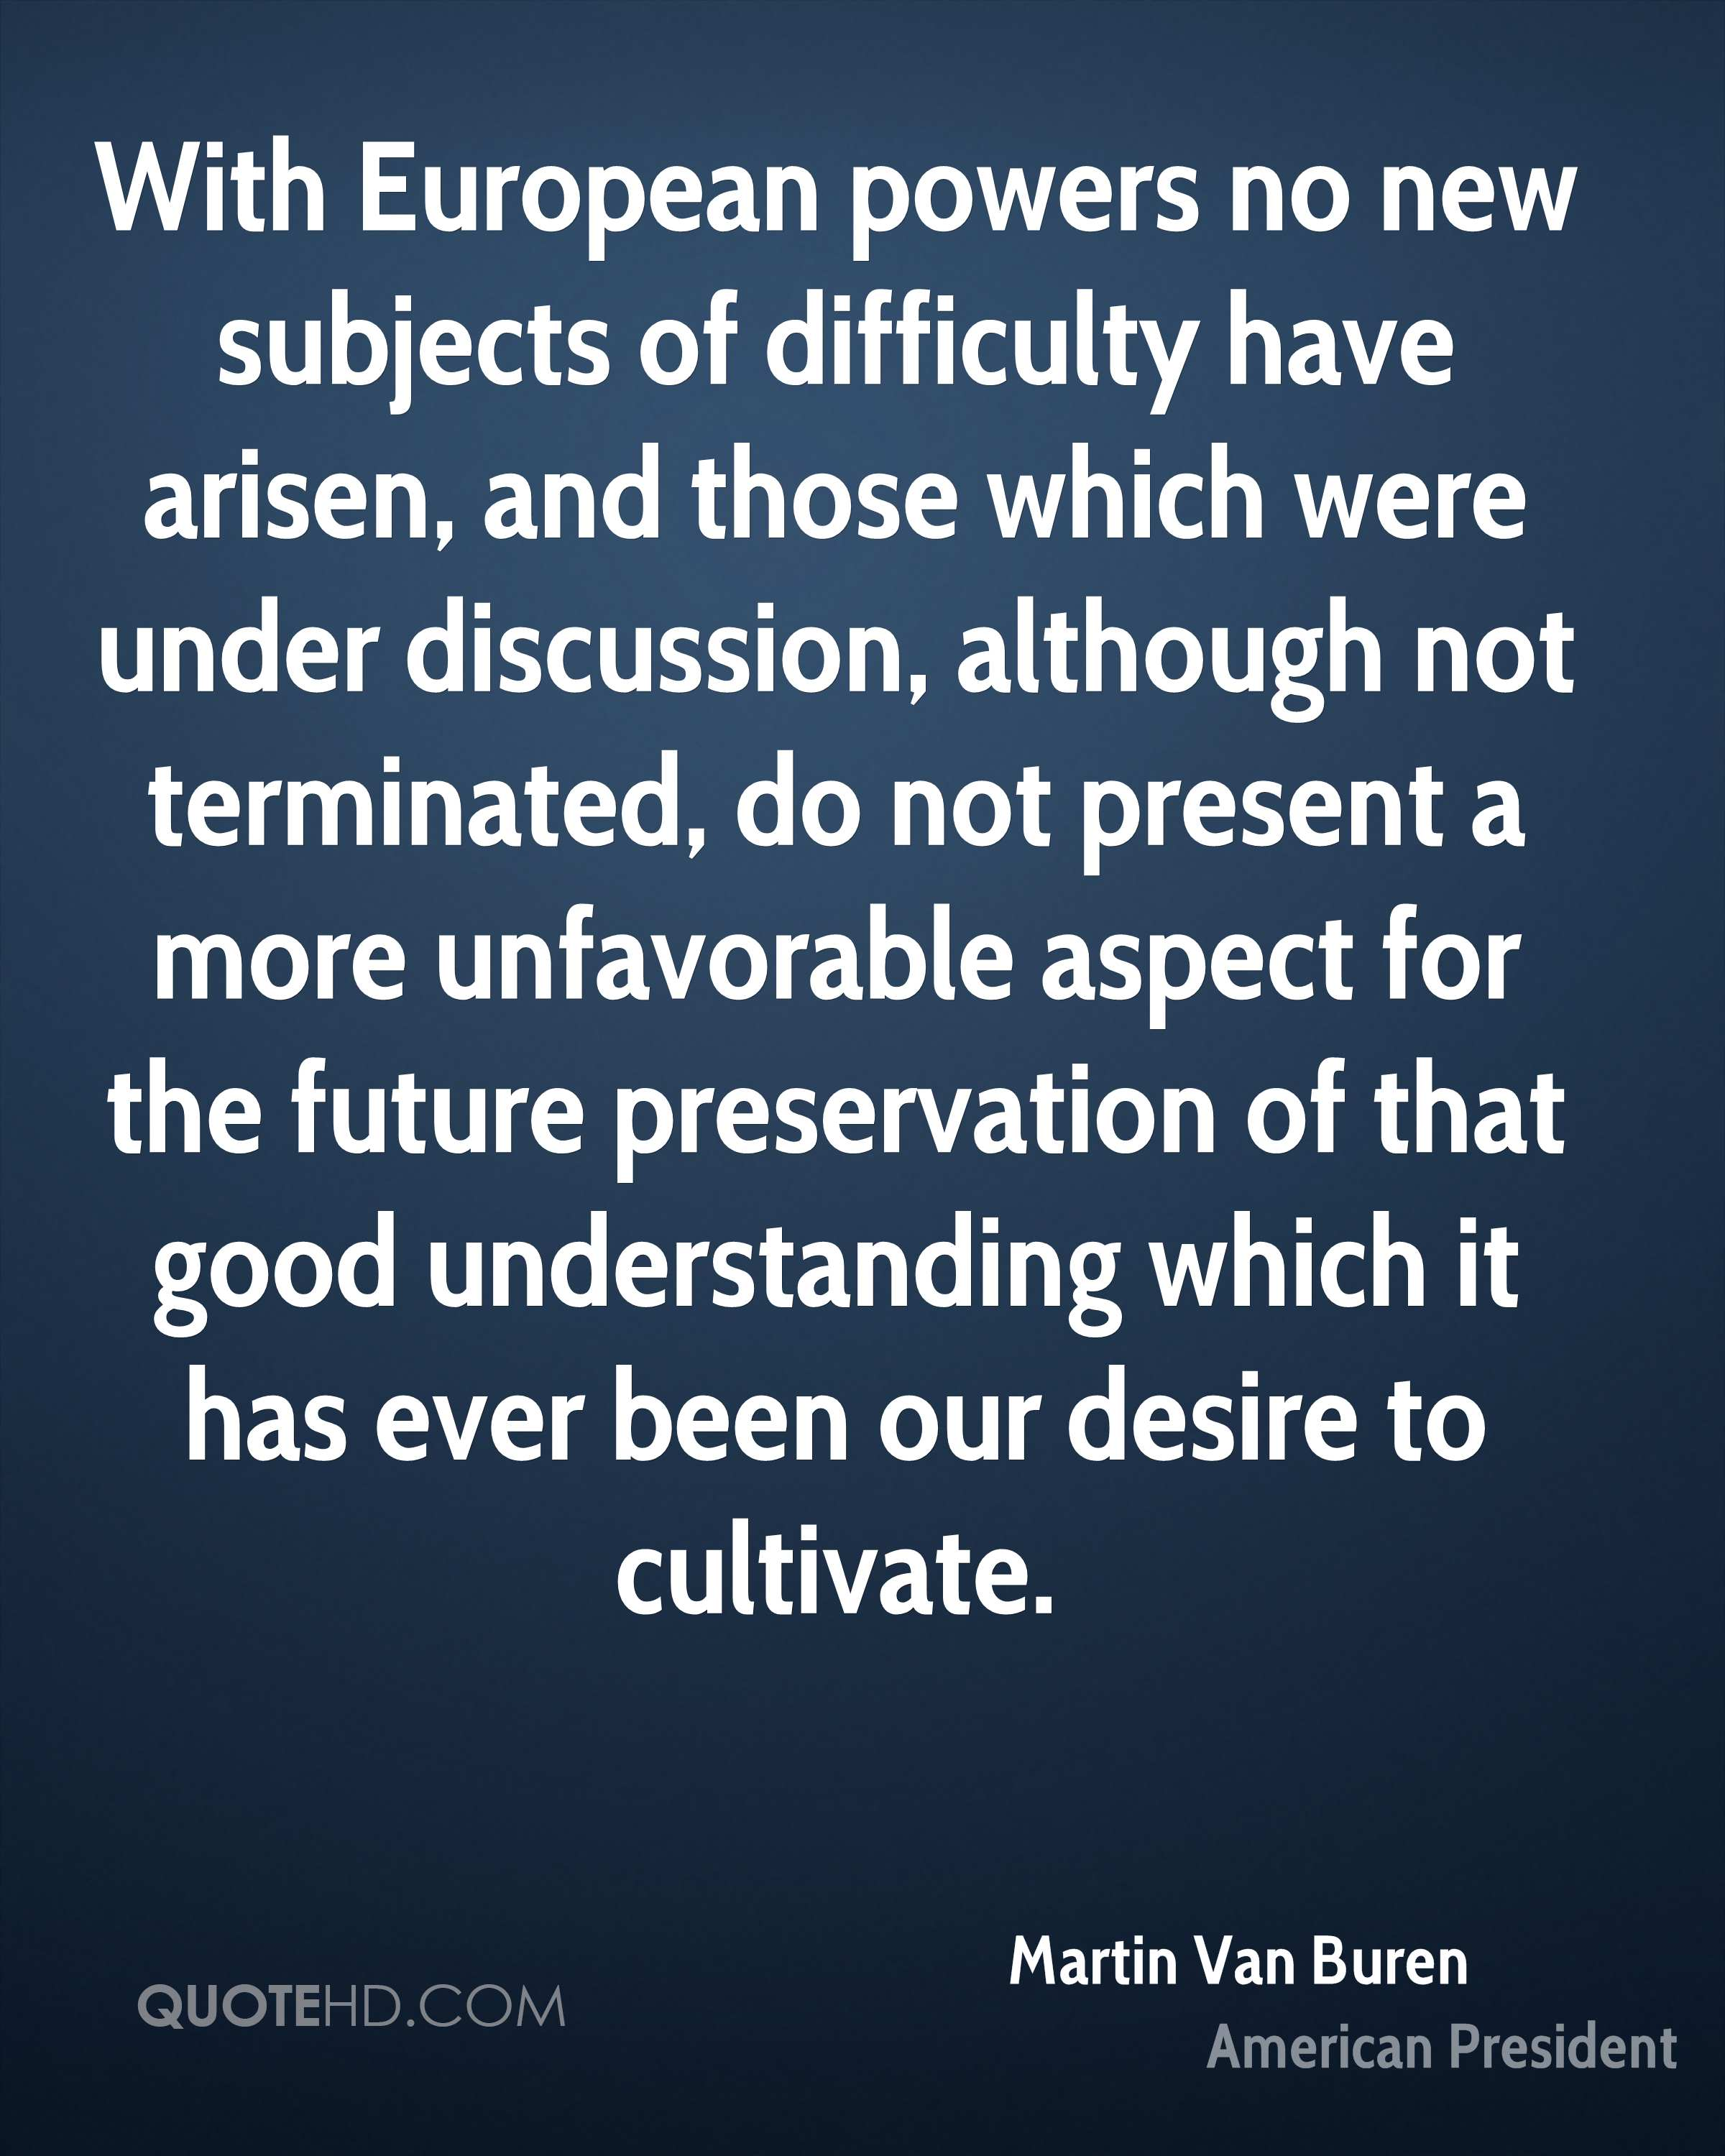 With European powers no new subjects of difficulty have arisen, and those which were under discussion, although not terminated, do not present a more unfavorable aspect for the future preservation of that good understanding which it has ever been our desire to cultivate.